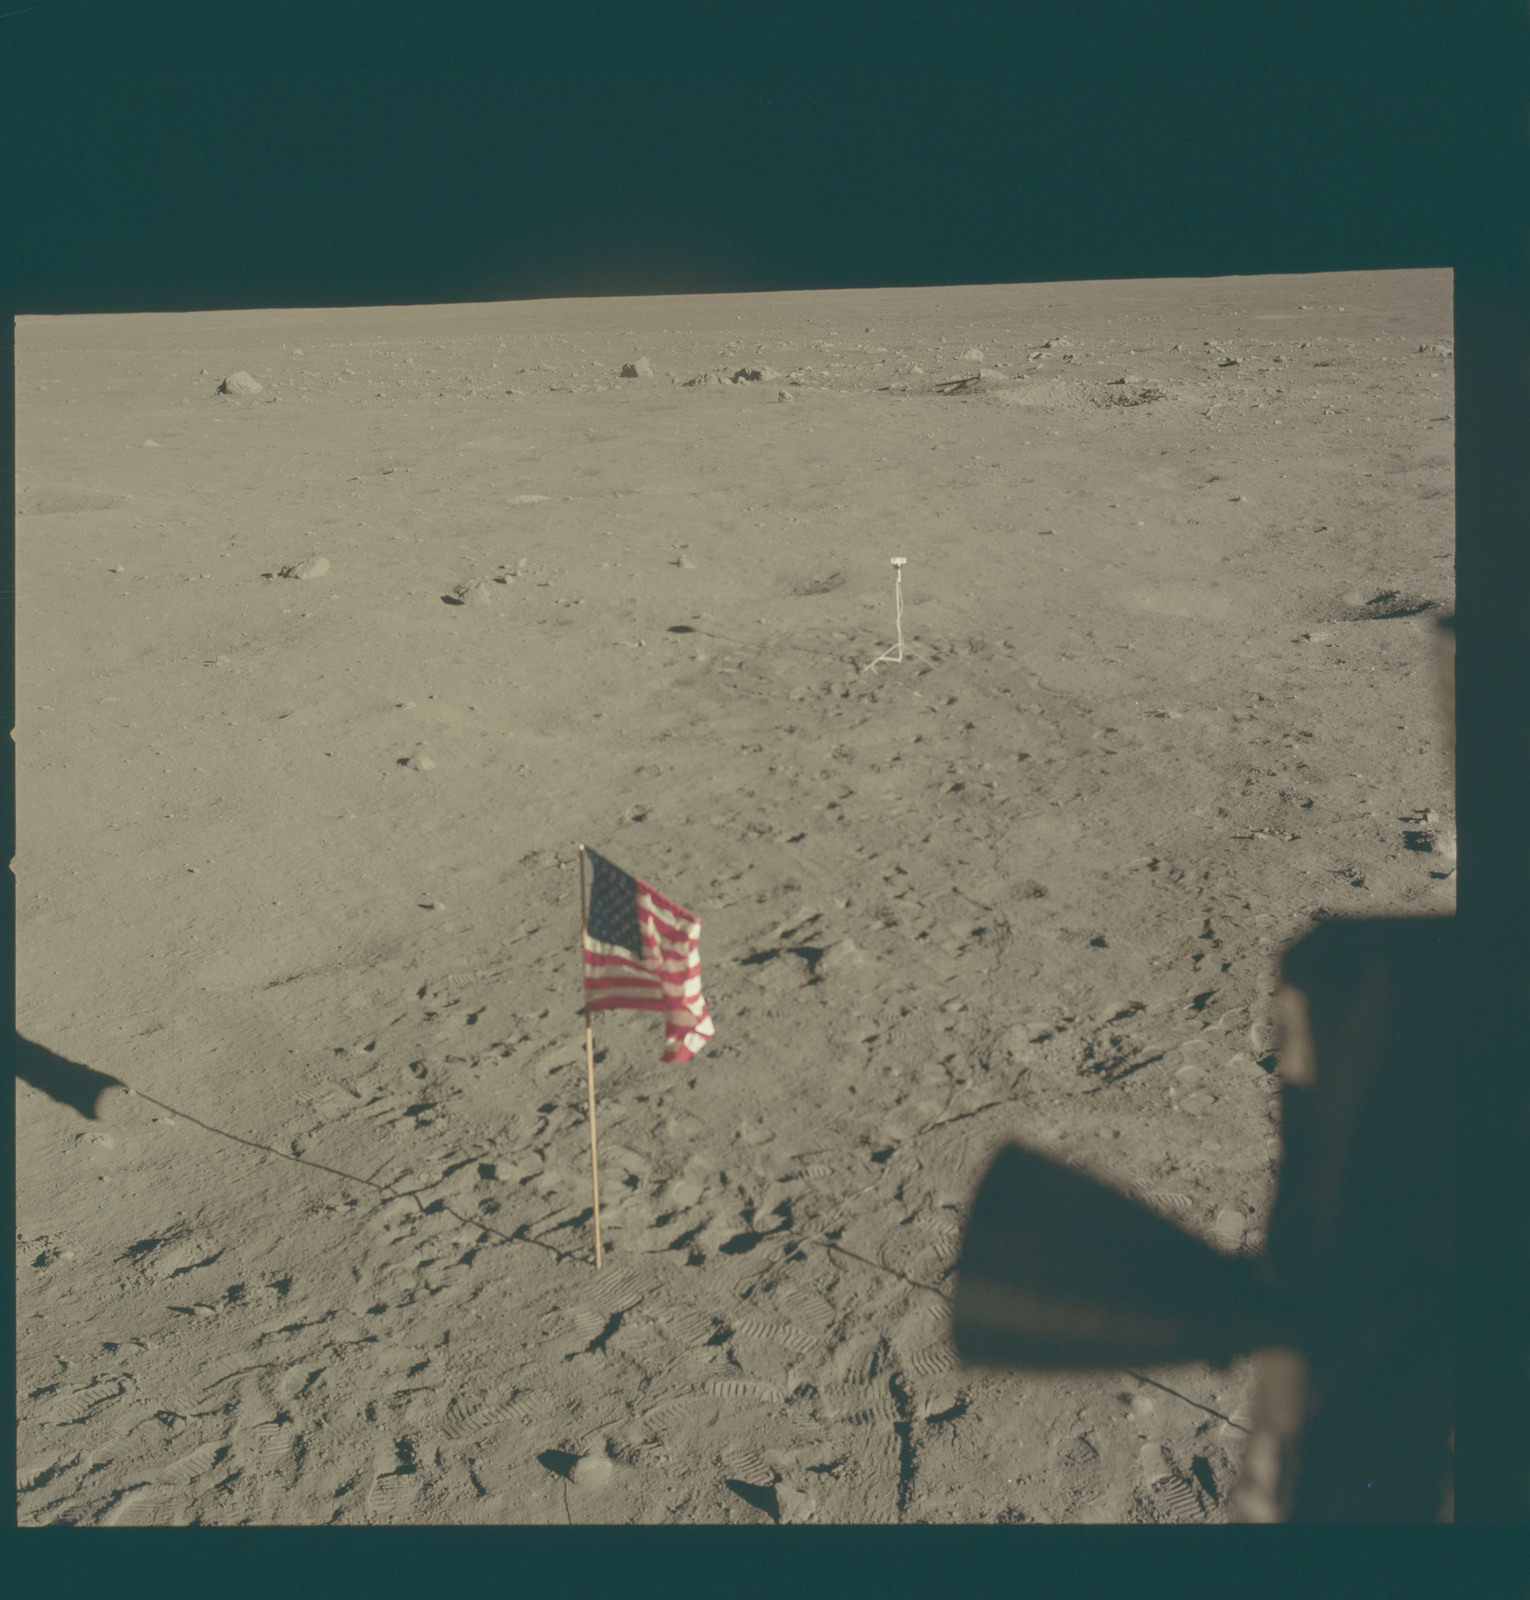 AS11-37-5467 - Apollo 11 - Apollo 11 Mission image - Lunar horizon from Tranquility Base